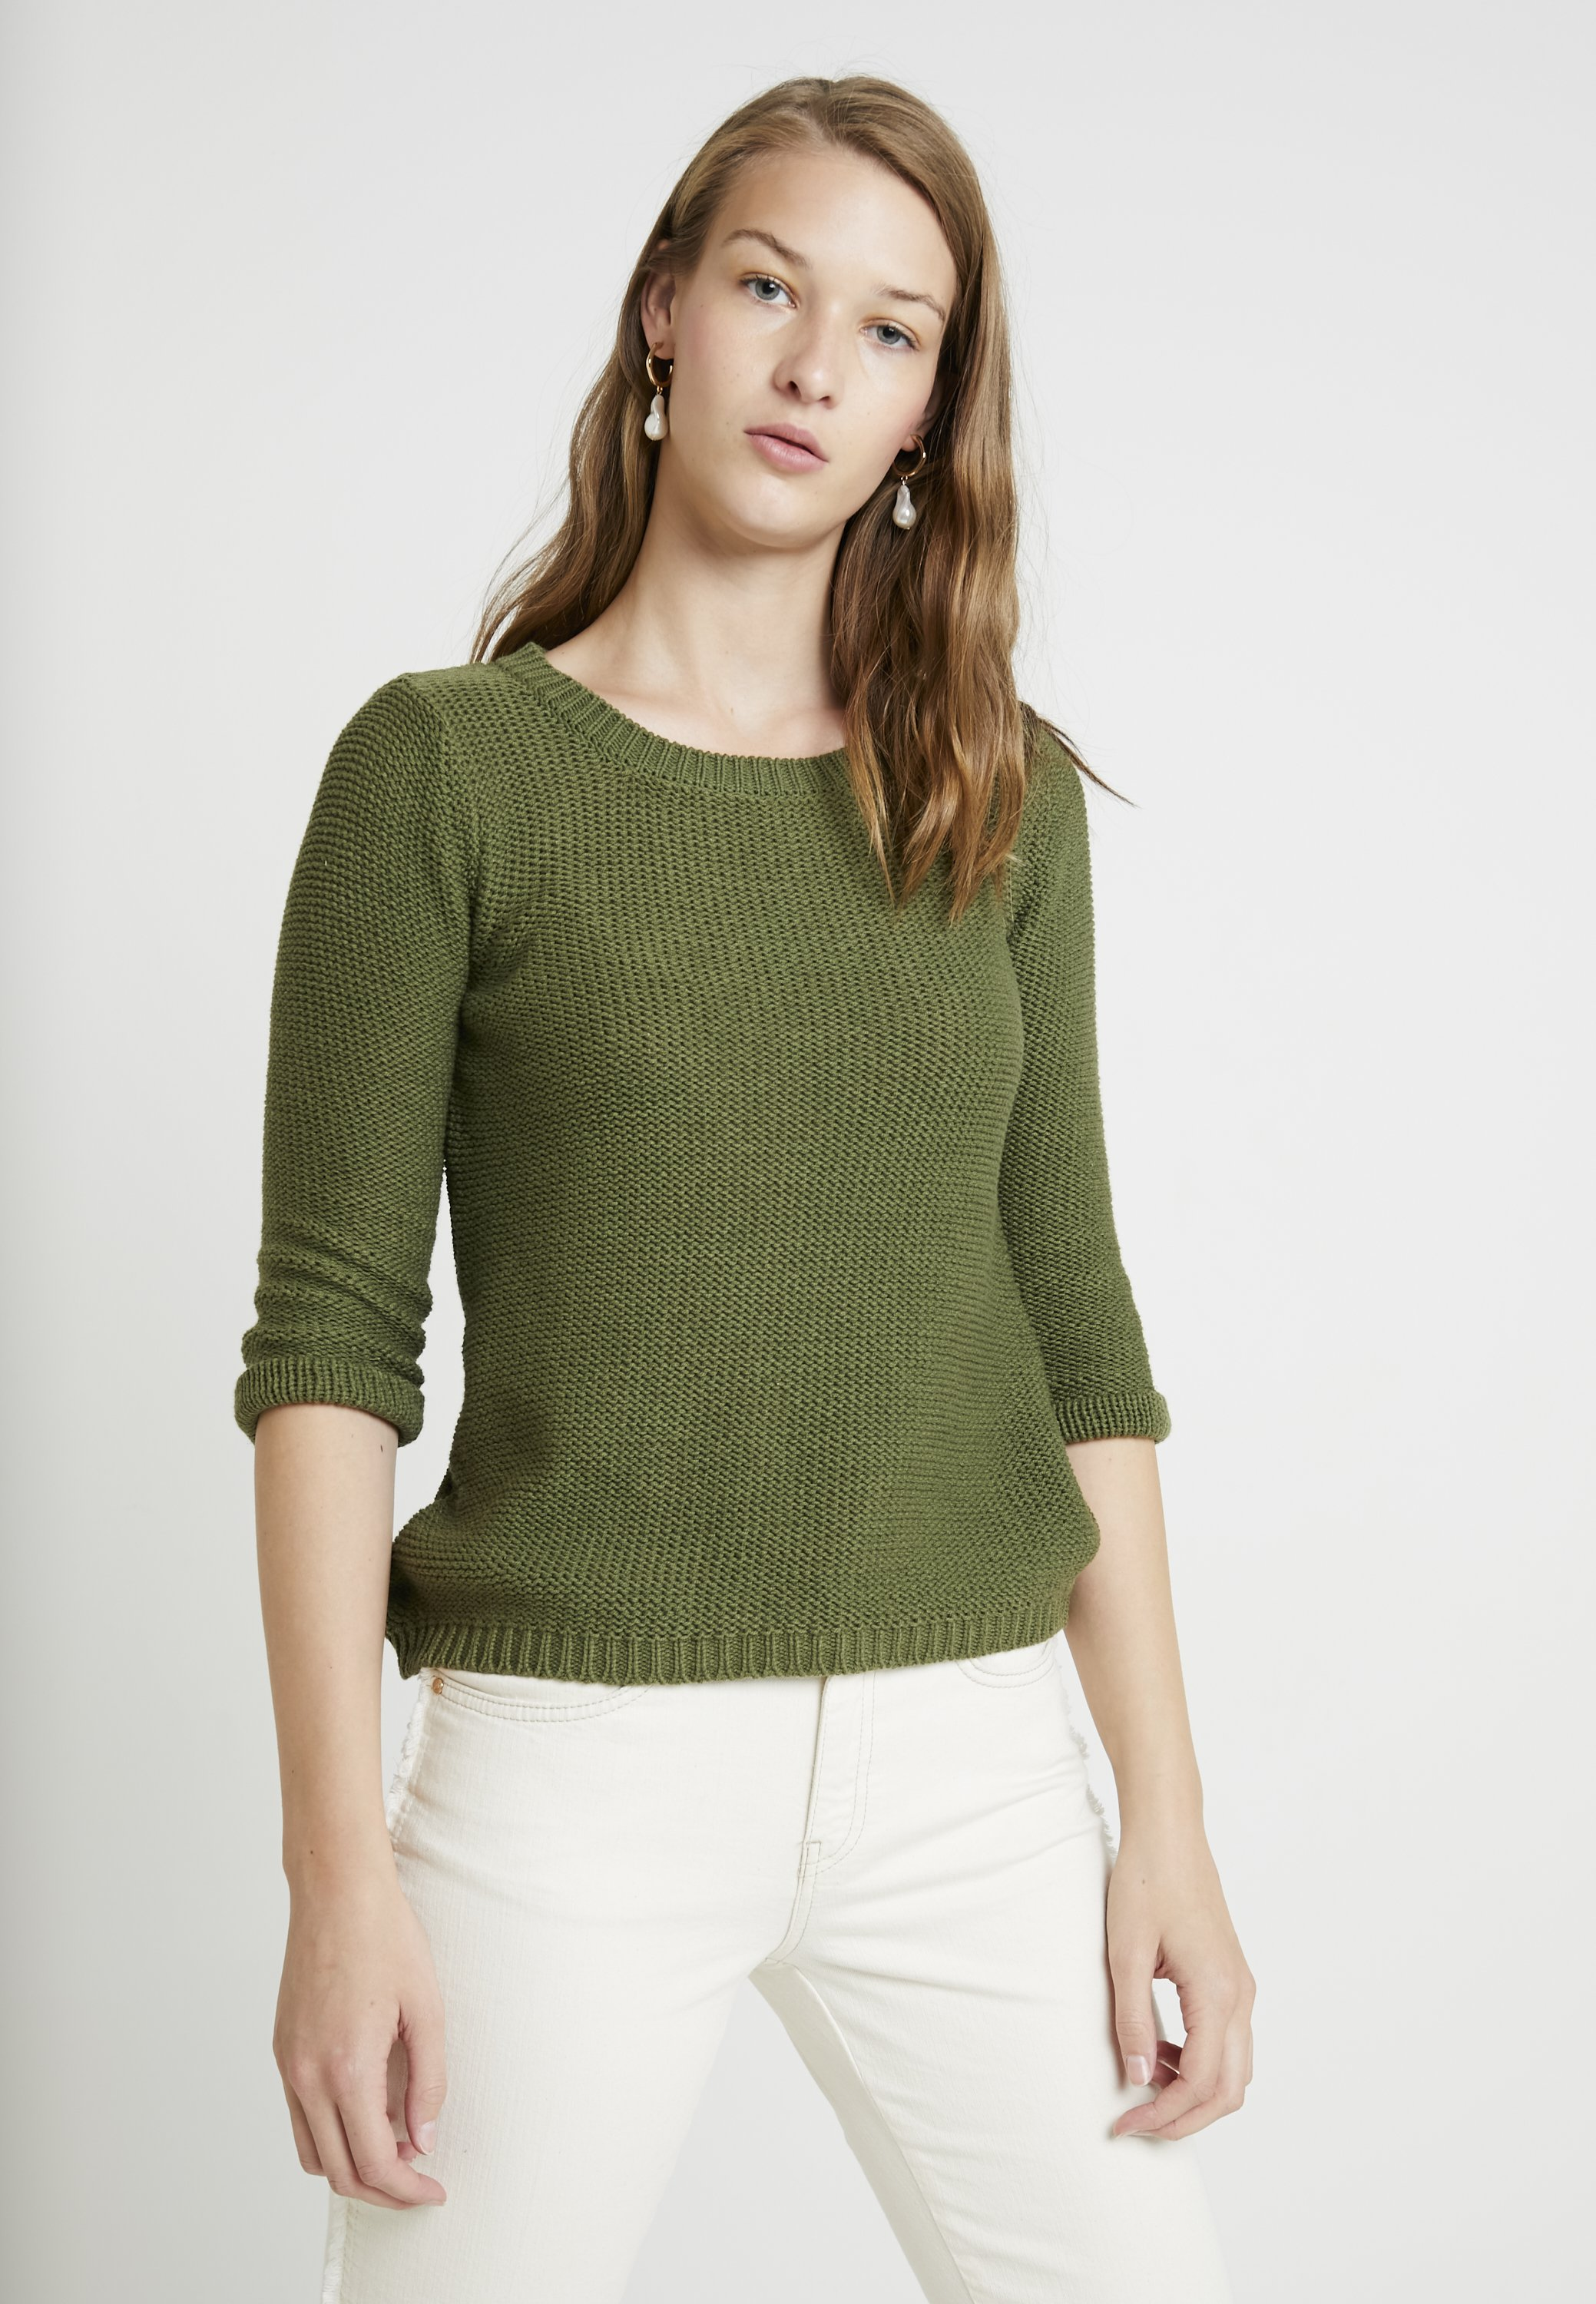 Winter SleevePullover Long Winter Mavi Moss Mavi SleevePullover Moss Long Winter SleevePullover Mavi Long Yfyb67g